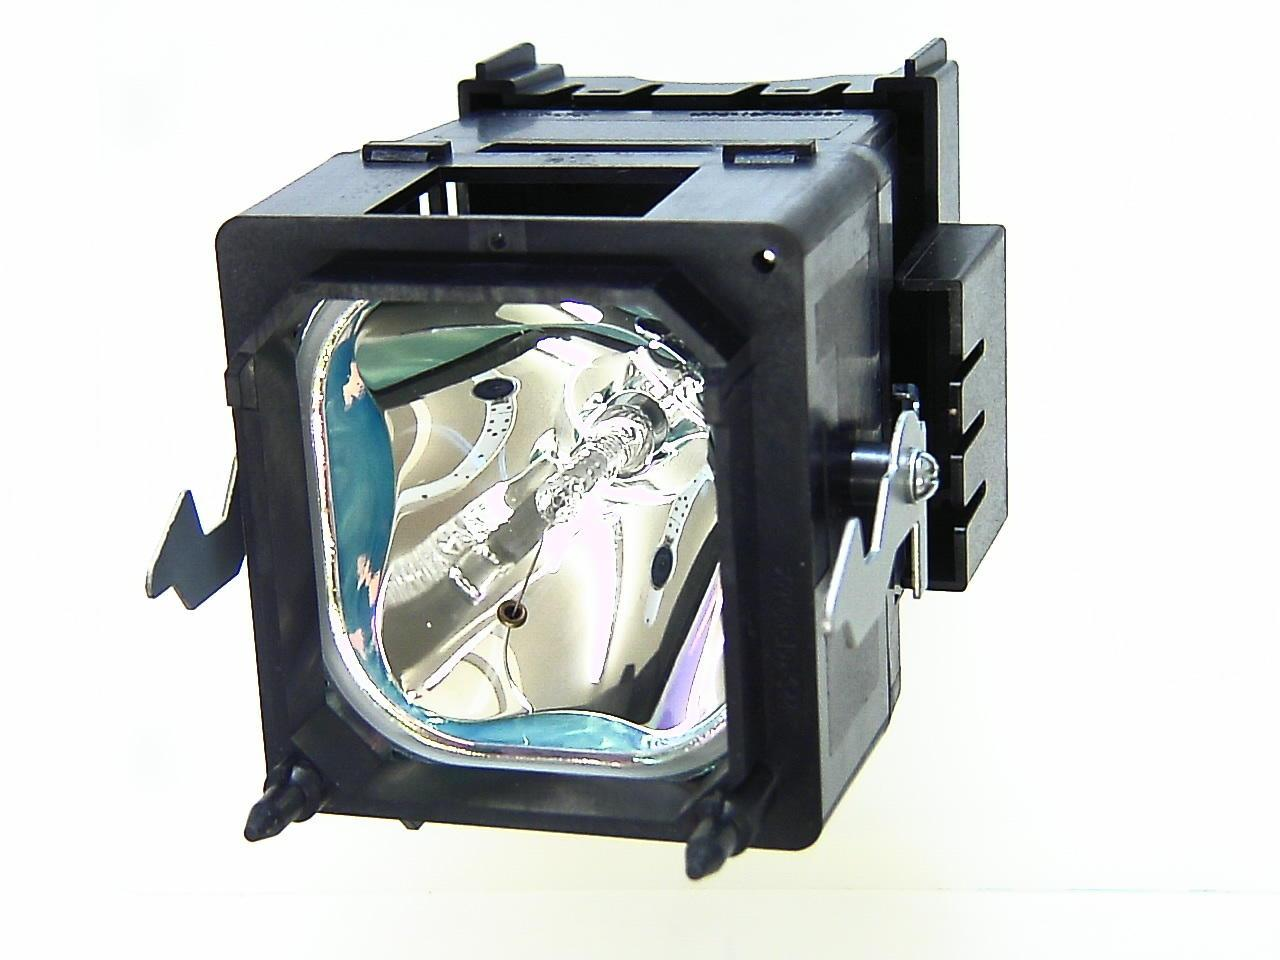 sony sony kds 60r200a genuine original rear projection tv lamp. Black Bedroom Furniture Sets. Home Design Ideas